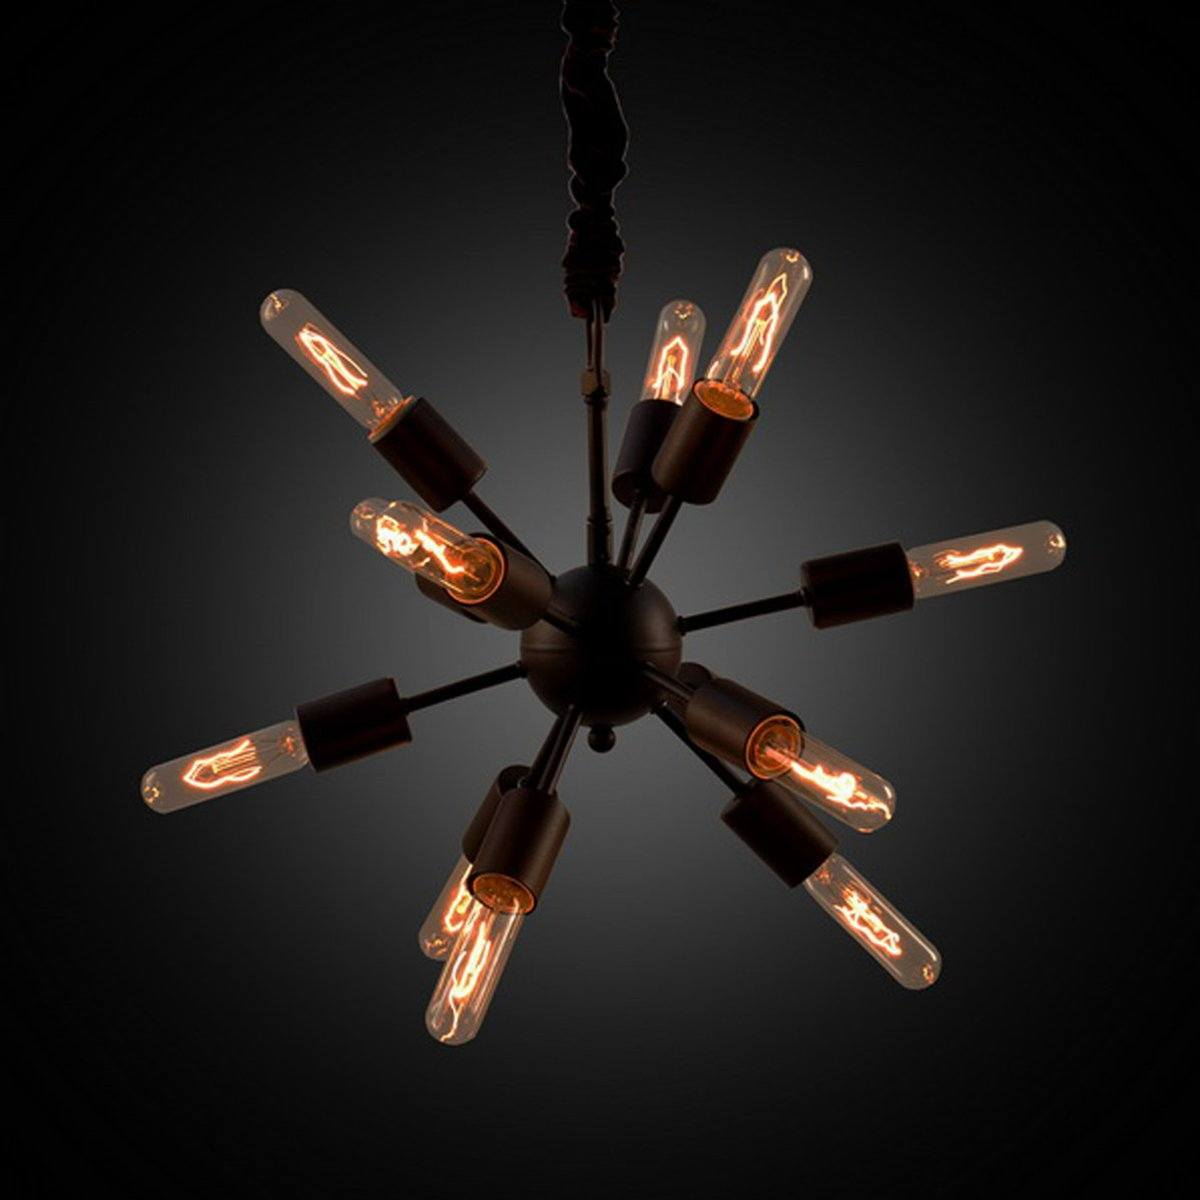 ORION SMALL CHANDELIER WITH LAMP BULB - Showhome Furniture